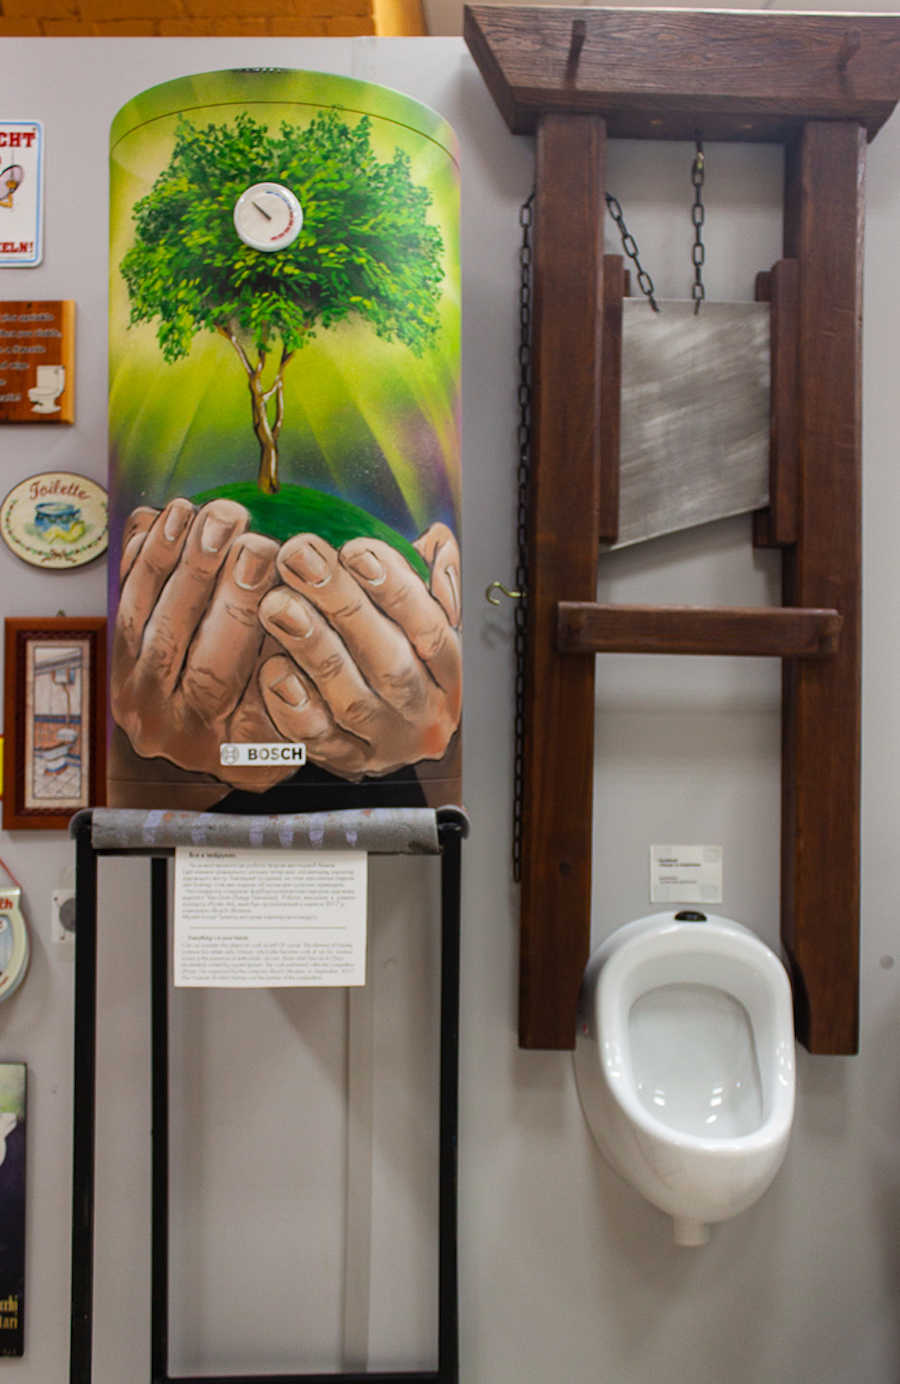 Museum Of Toilet History - Toilet Themed Art